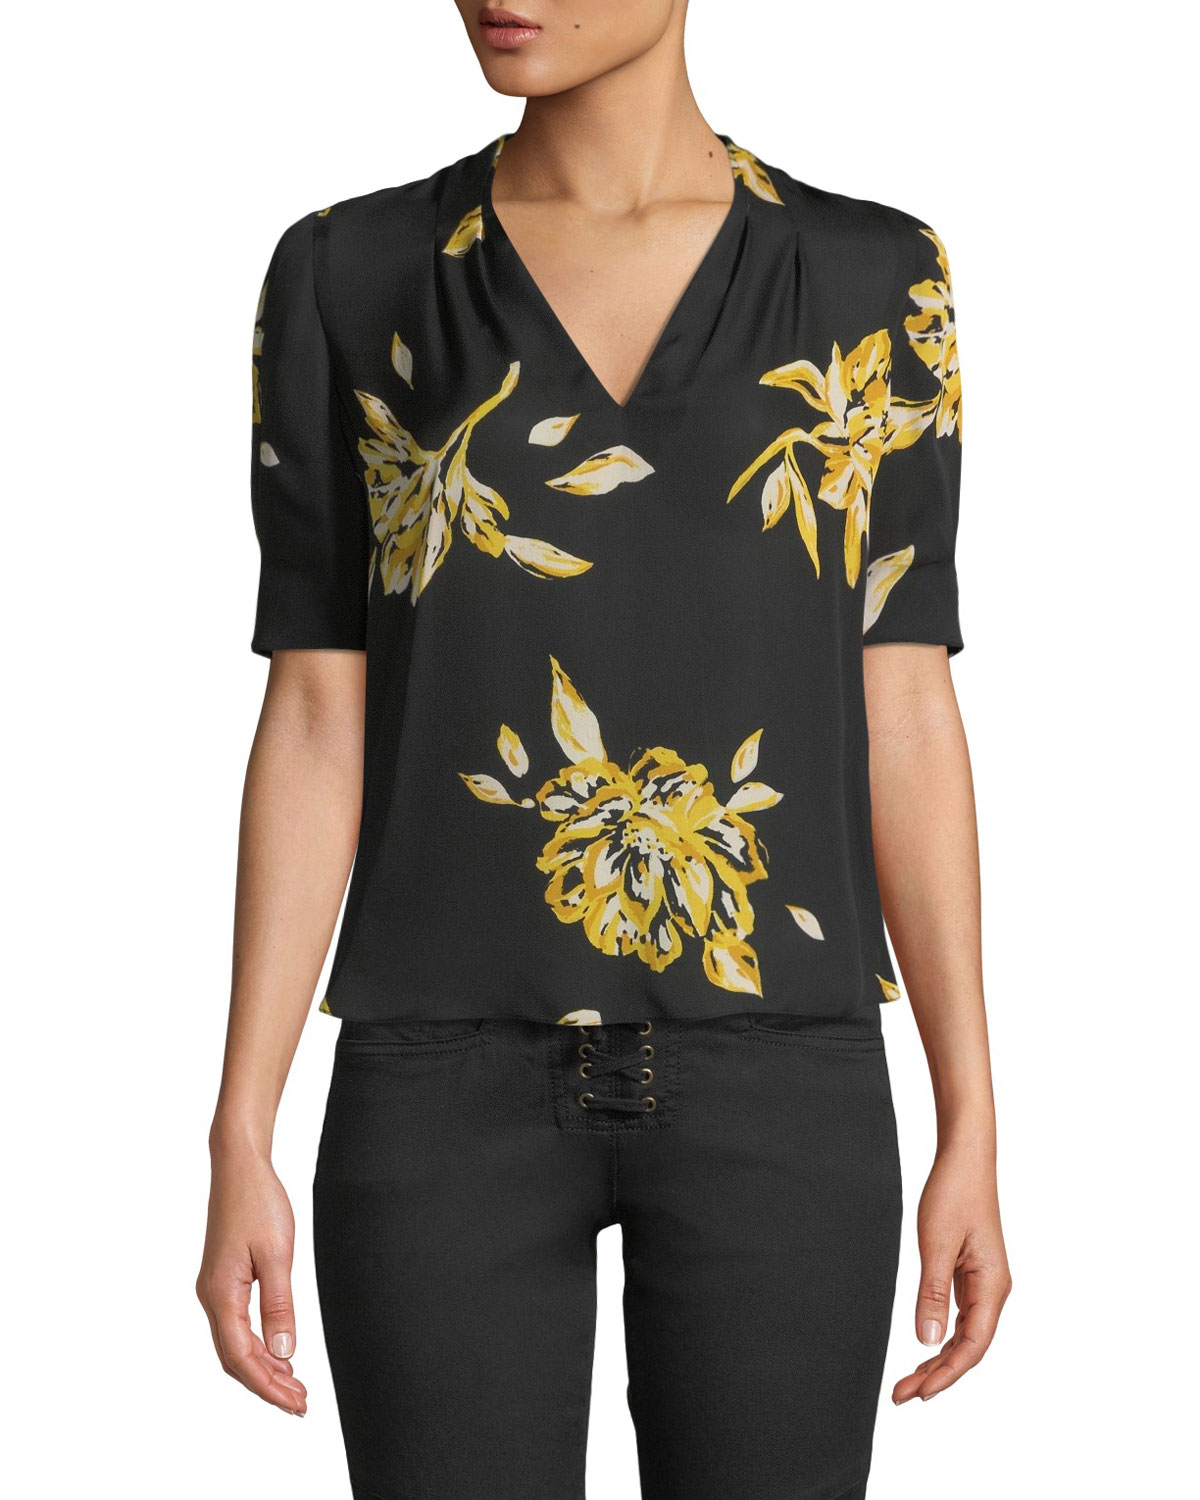 0993e1291f692 Joie Ance Short-Sleeve Floral Silk Top